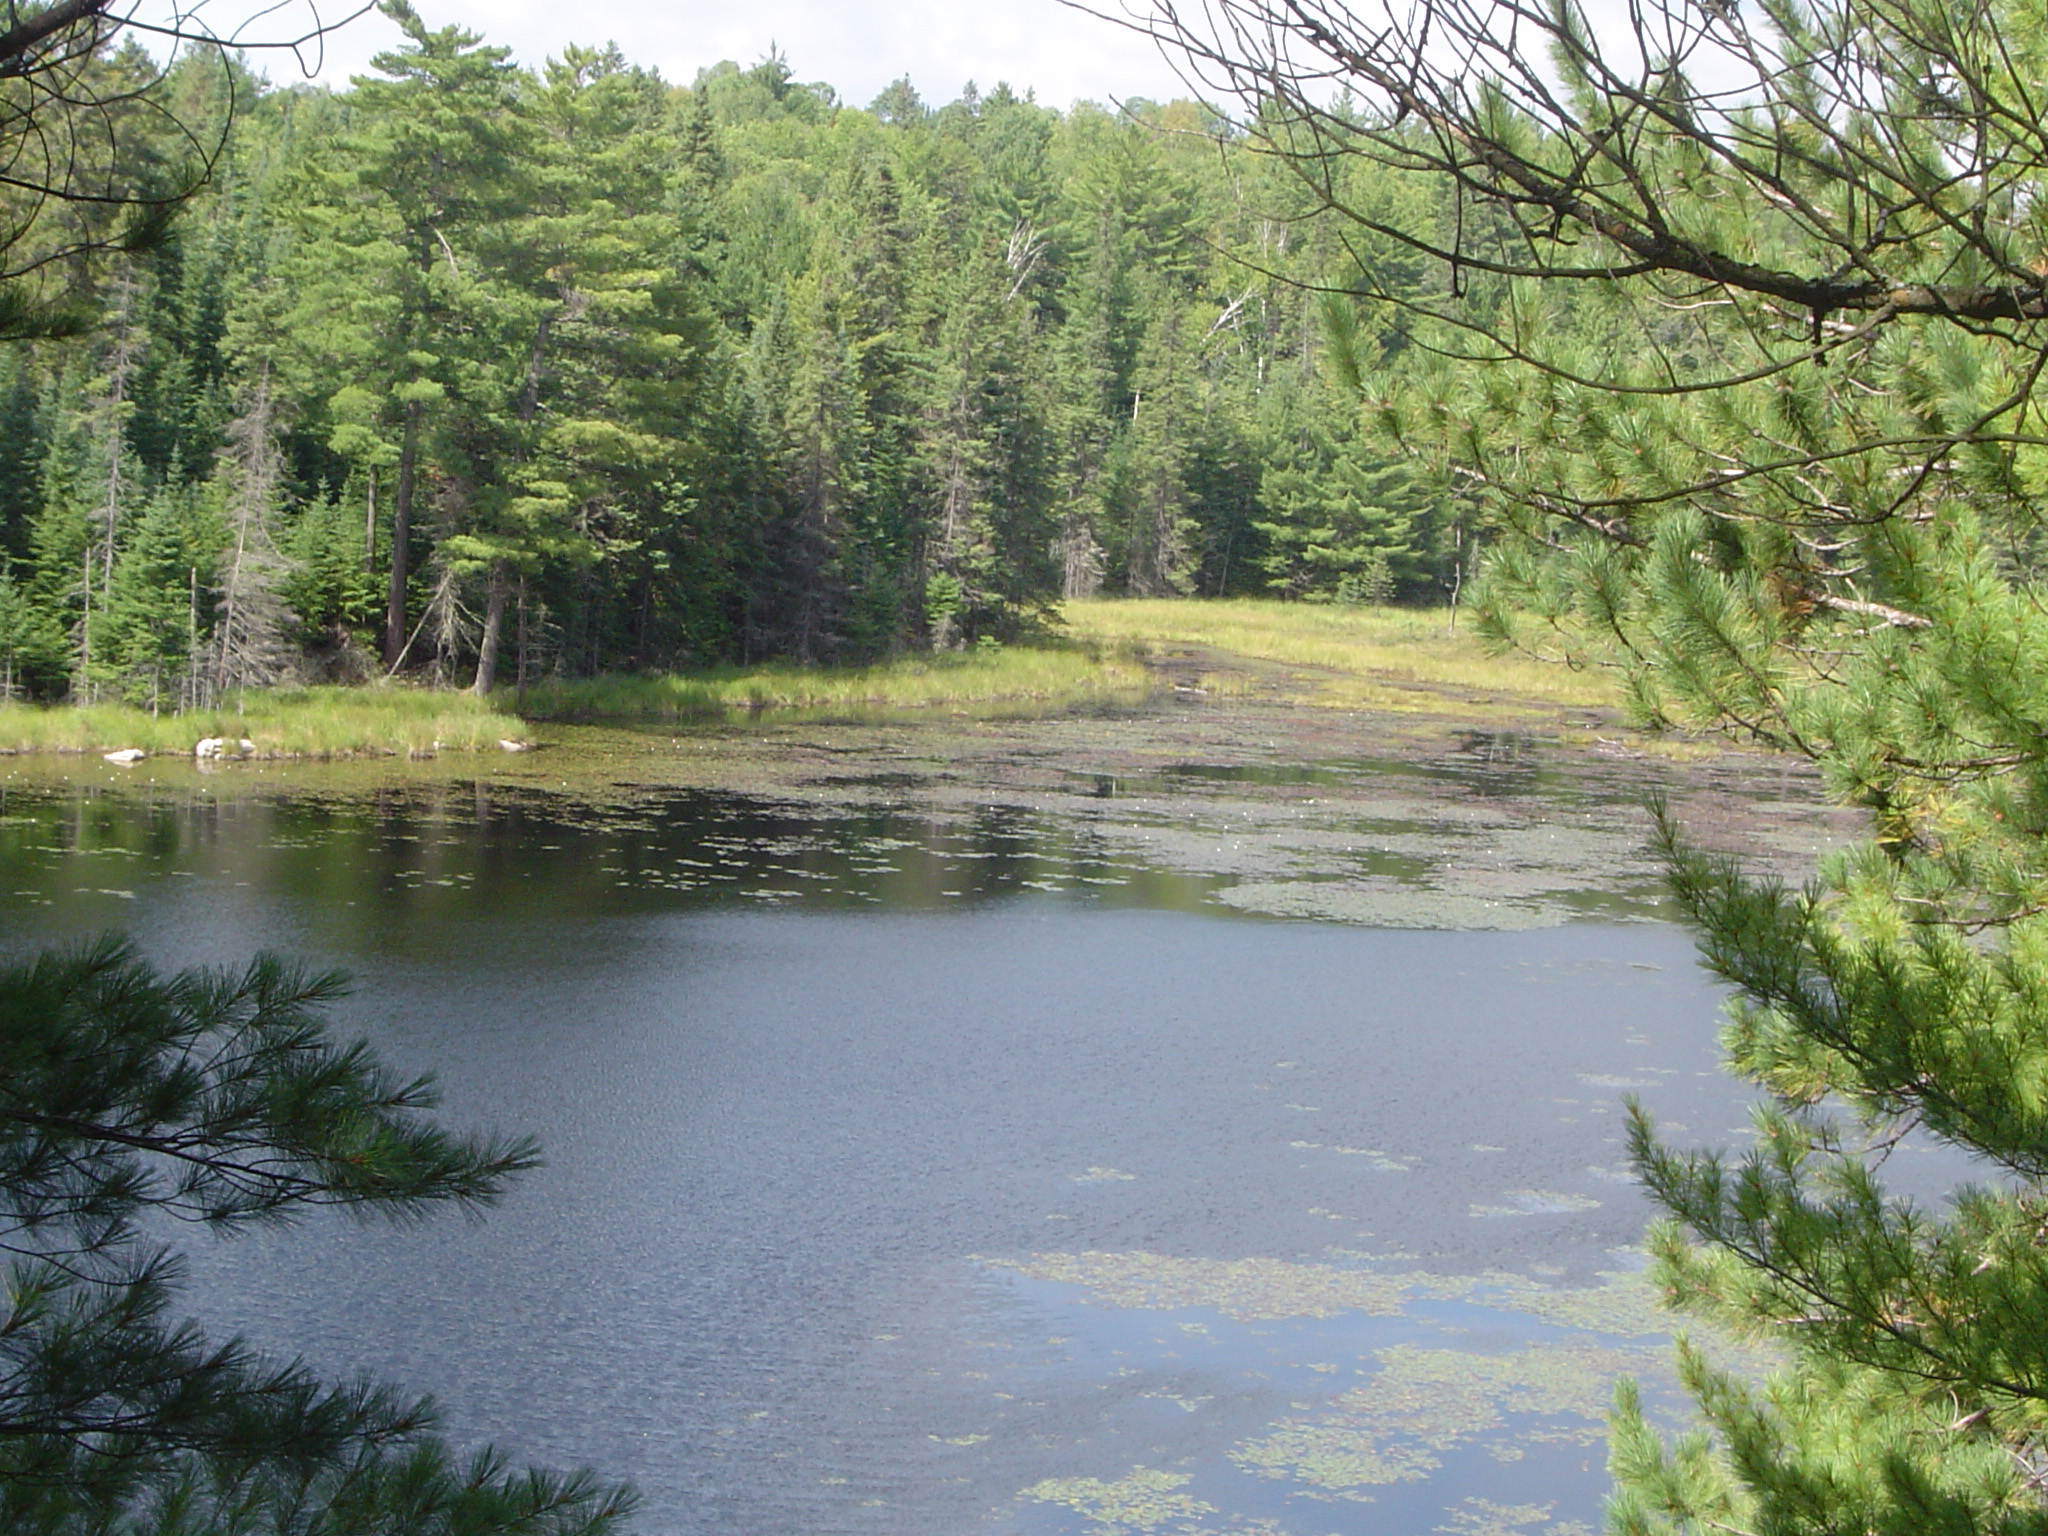 Overview of Lake in Forest in Algonquin Park, Ontario, Canada